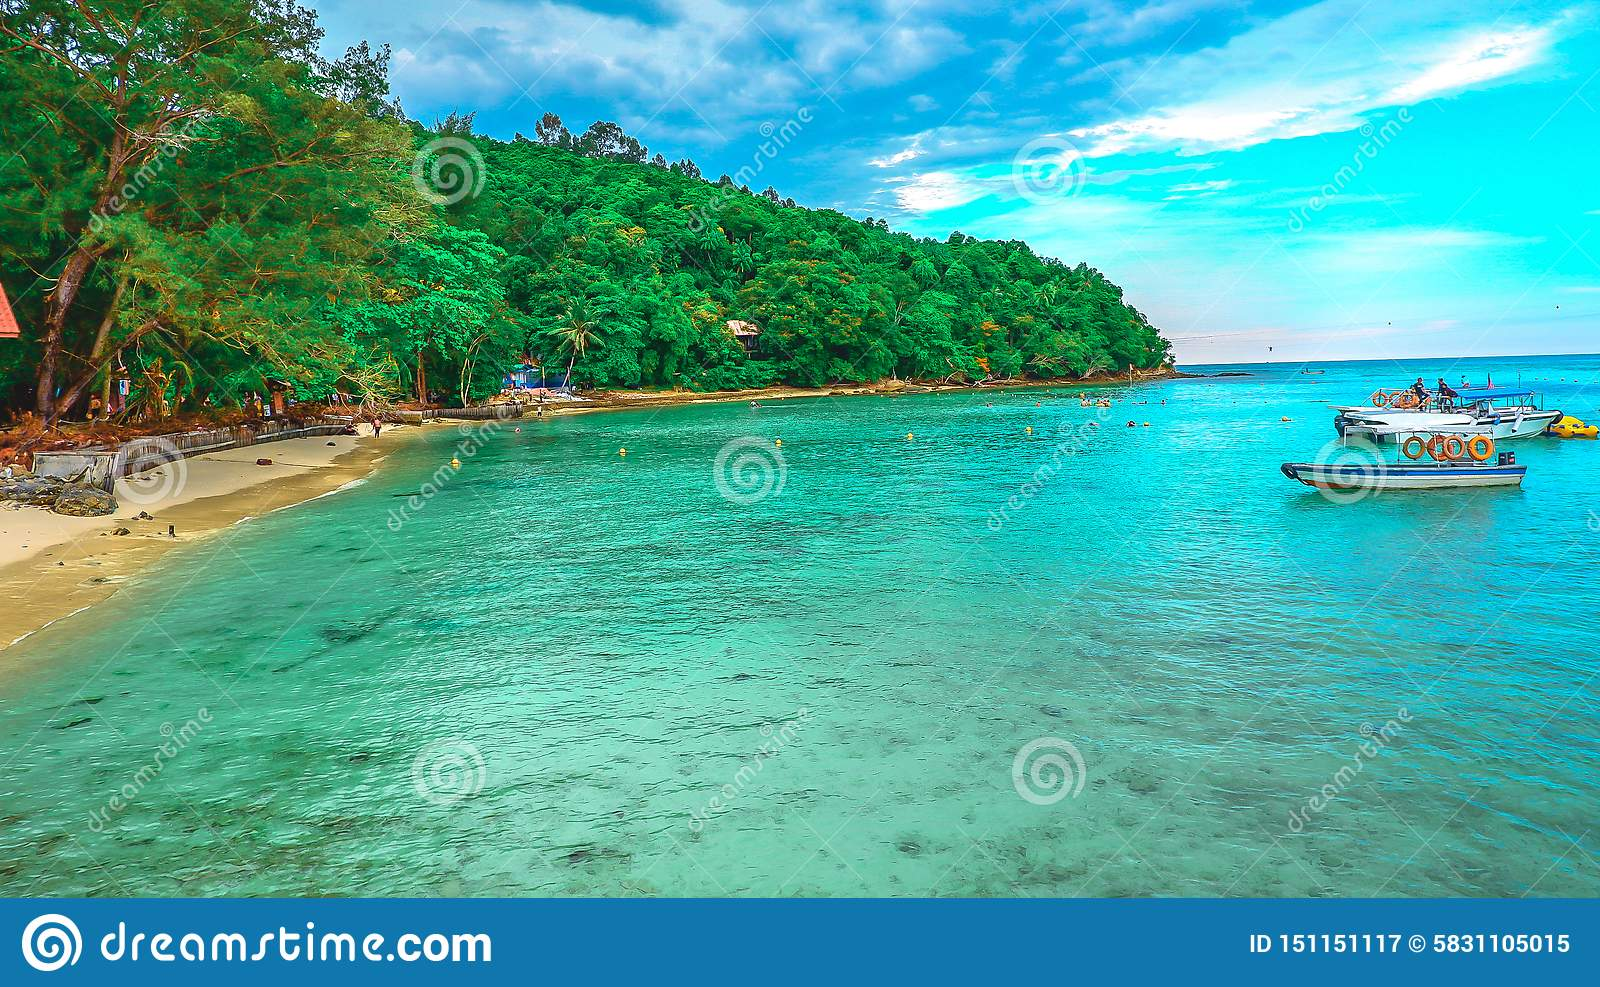 Landscape view of troical beach in the island